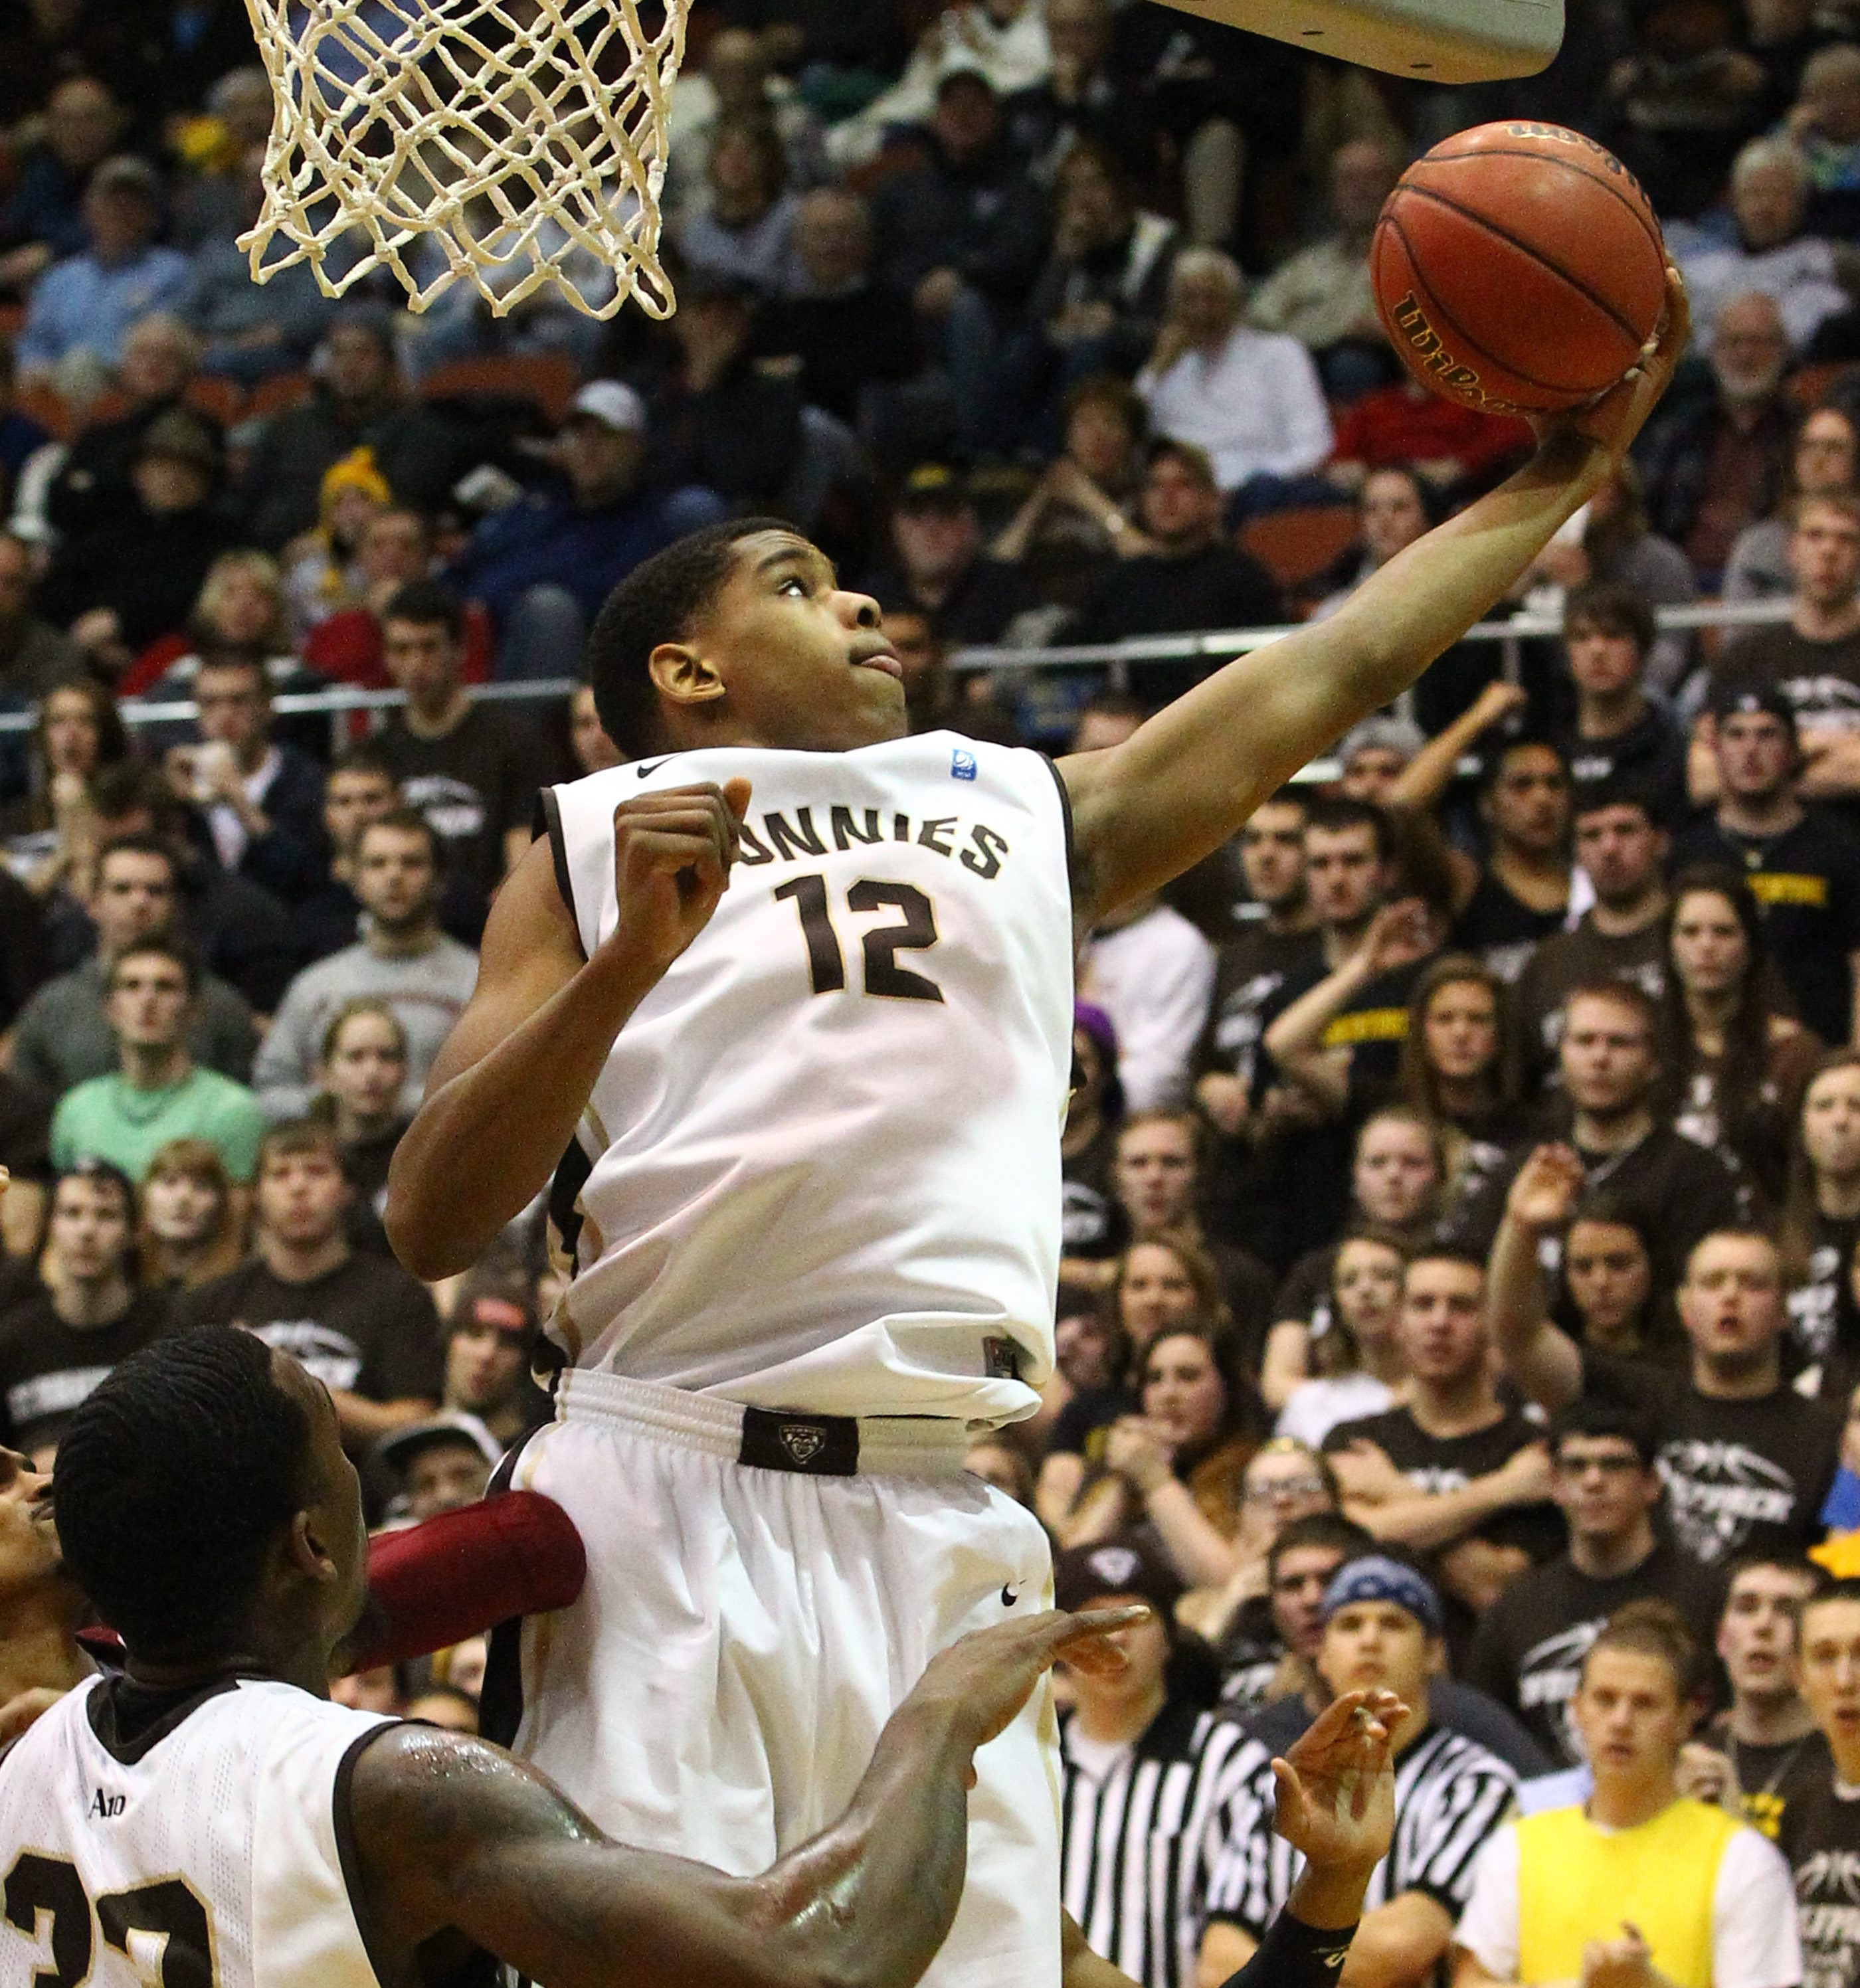 St. Bonaventure Bonnies guard/forward Denzel Gregg (12) scores two points over Massachusetts Minutemen forward Raphiael Putney (34) in the first half at the Reilly Center at St Bonaventure in Olean,NY on Wednesday, Jan. 29, 2014. (James P. McCoy/ Buffalo News)